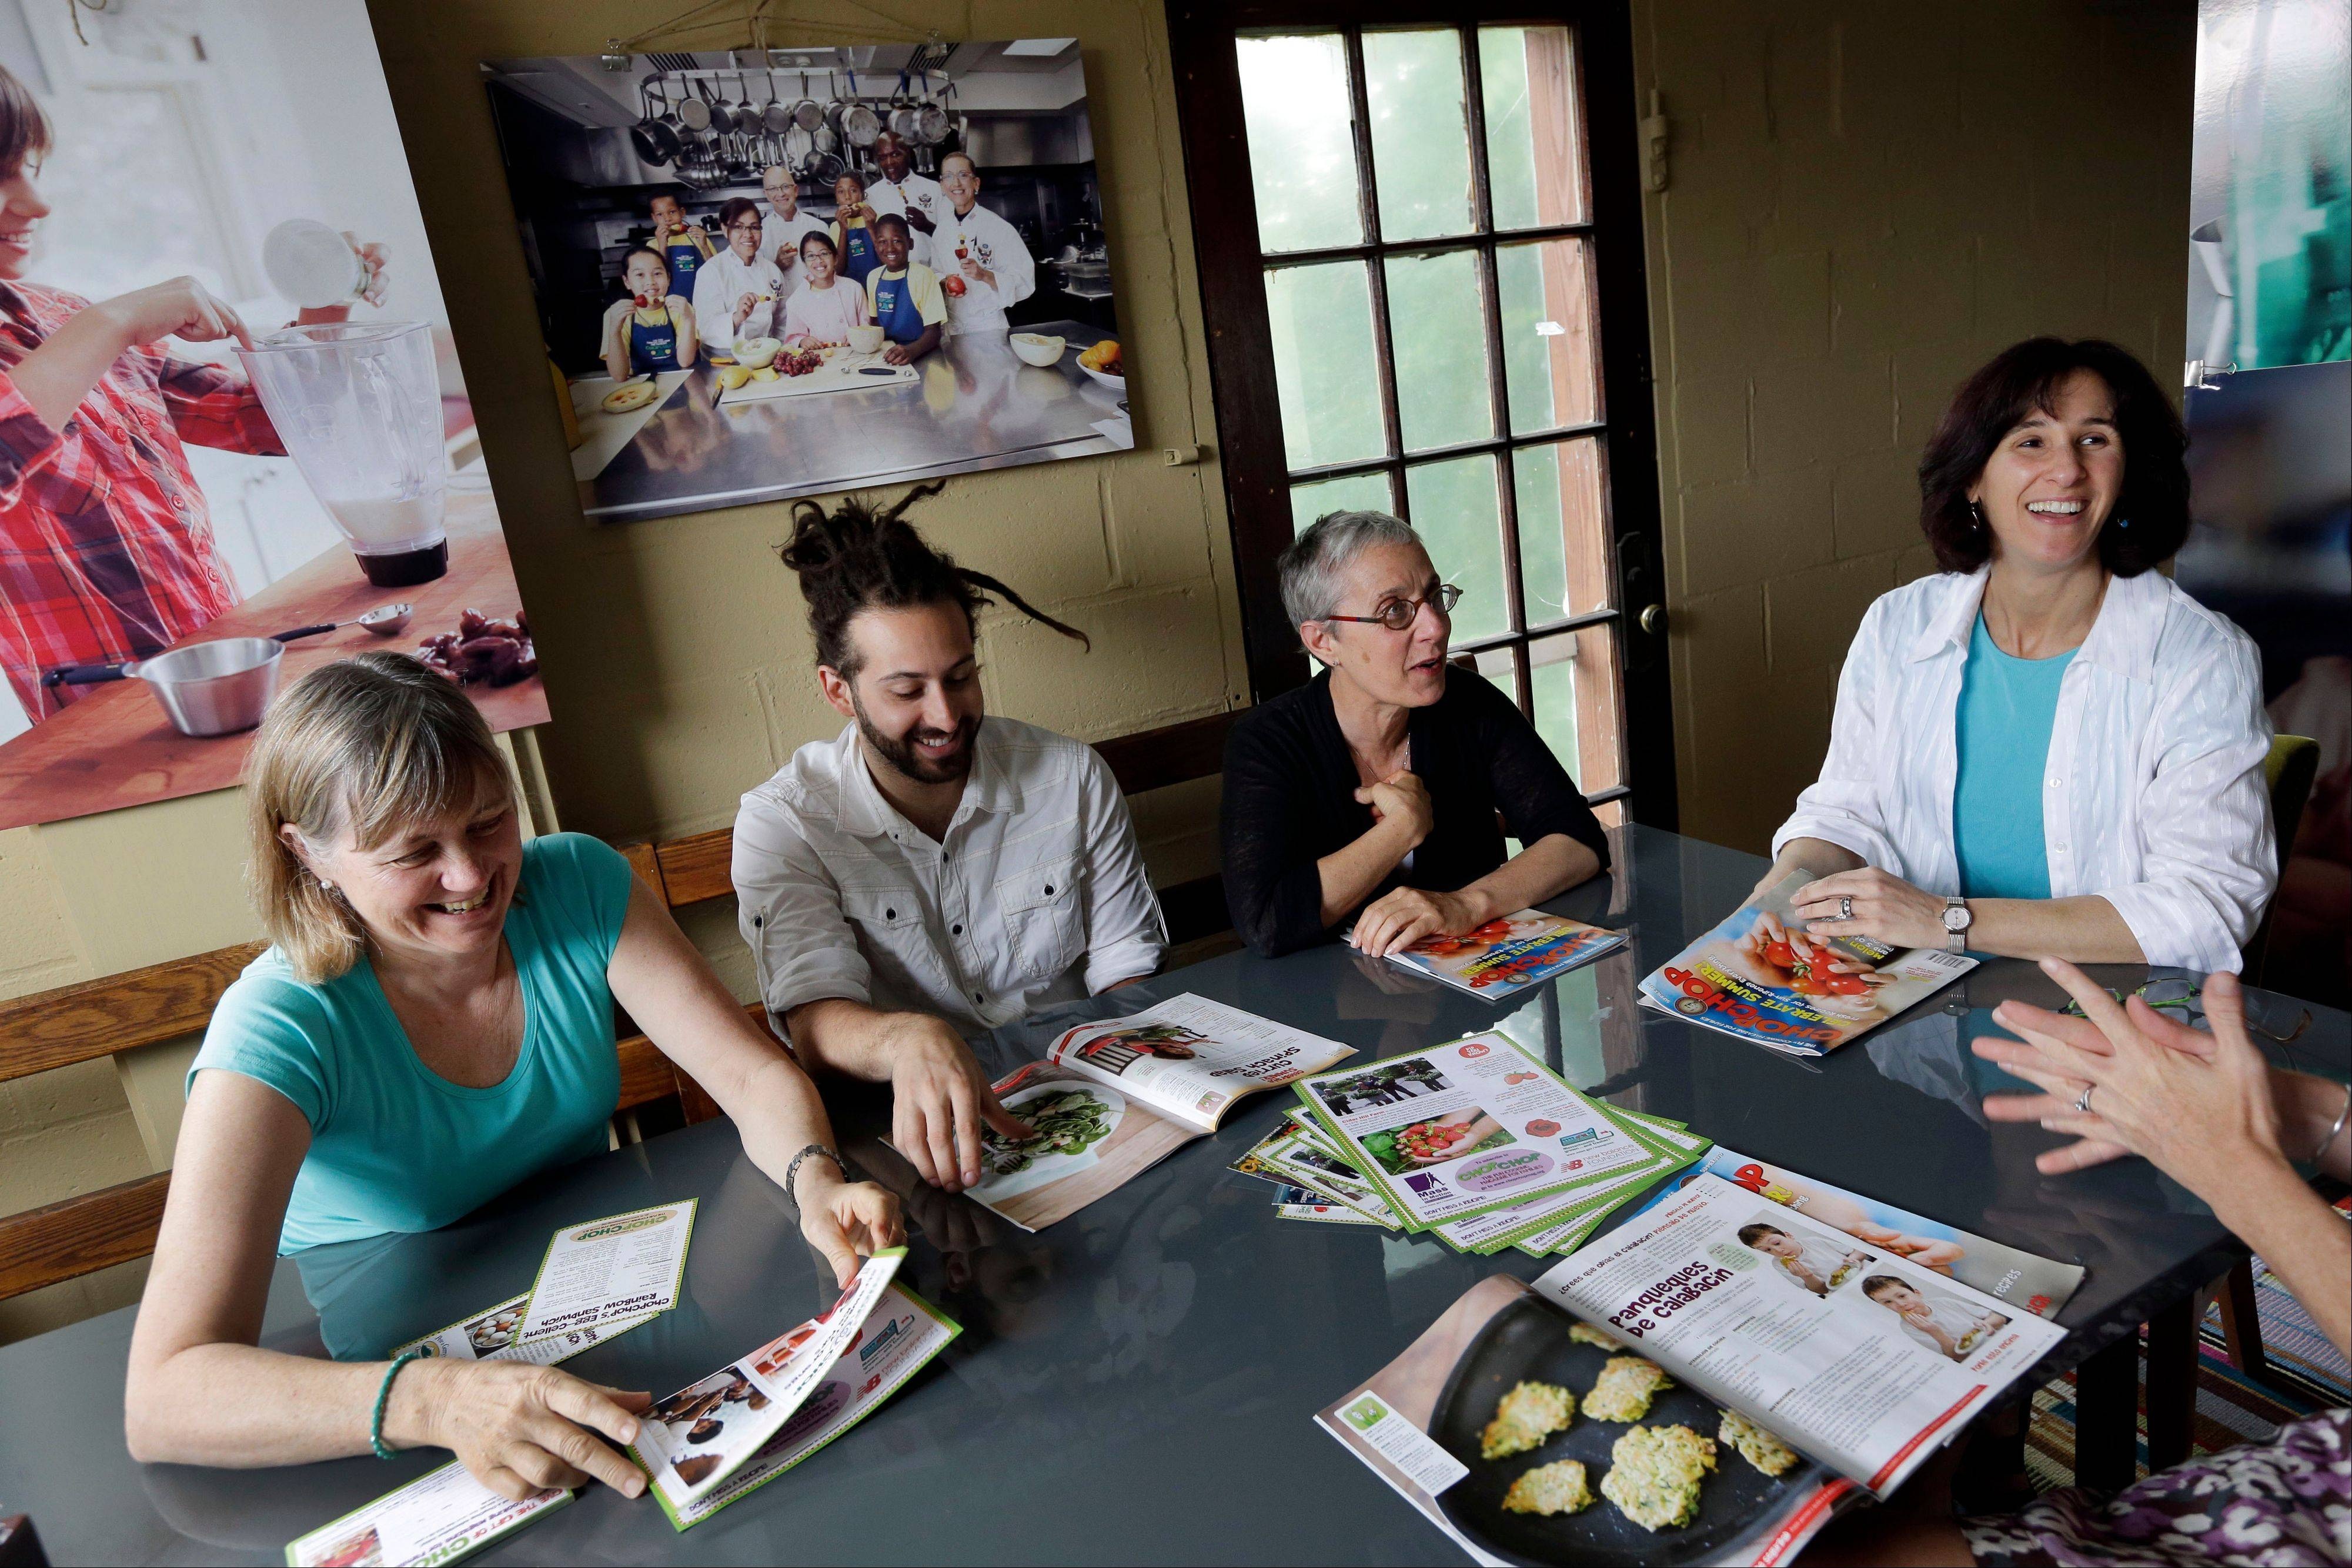 President and founder Sally Sampson, third from left, meets with staffers Cathy Chute, left, Joshua Peters, and Pamela Banks, right, around a conference table at the offices of ChopChop Magazine in Watertown, Mass.